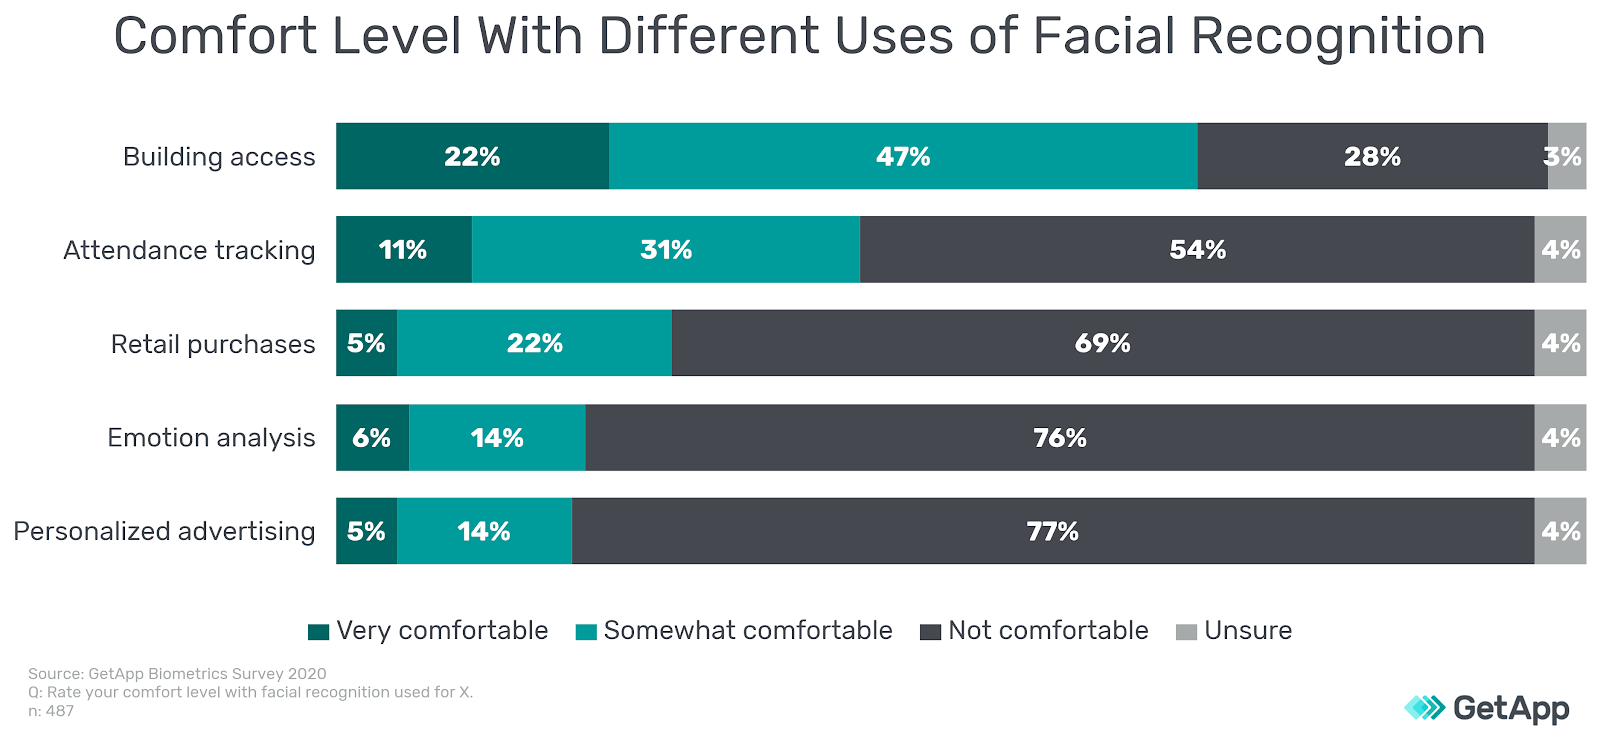 Comfort level with facial recognition statistic